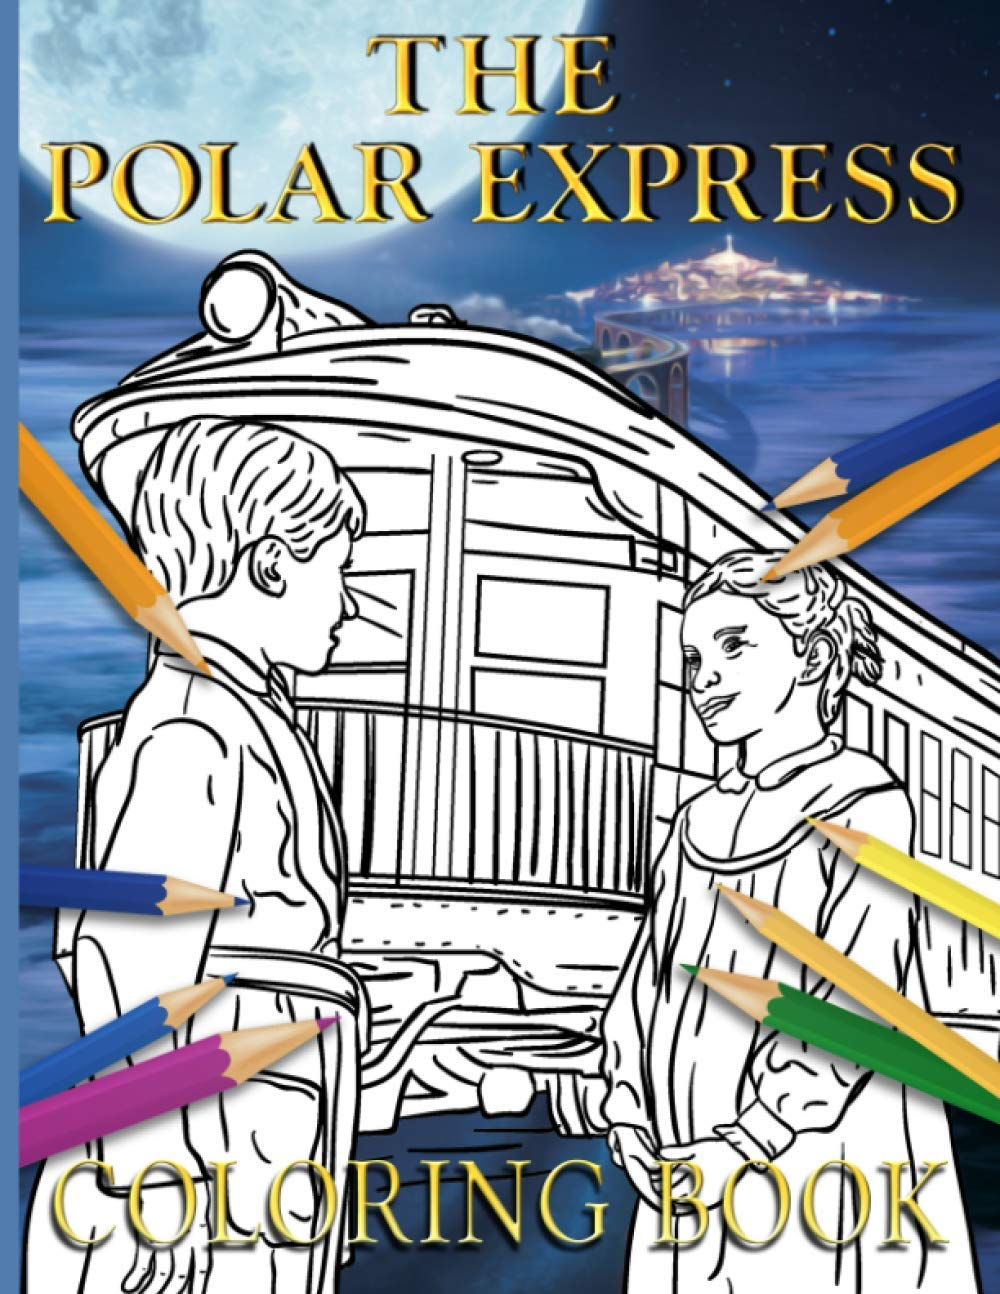 The Polar Express Coloring Book The Polar Express Color Wonder Relaxation Coloring Books For Adult With Exclusive Images Johnston Barnaby 9798691000669 Amazon Com Books